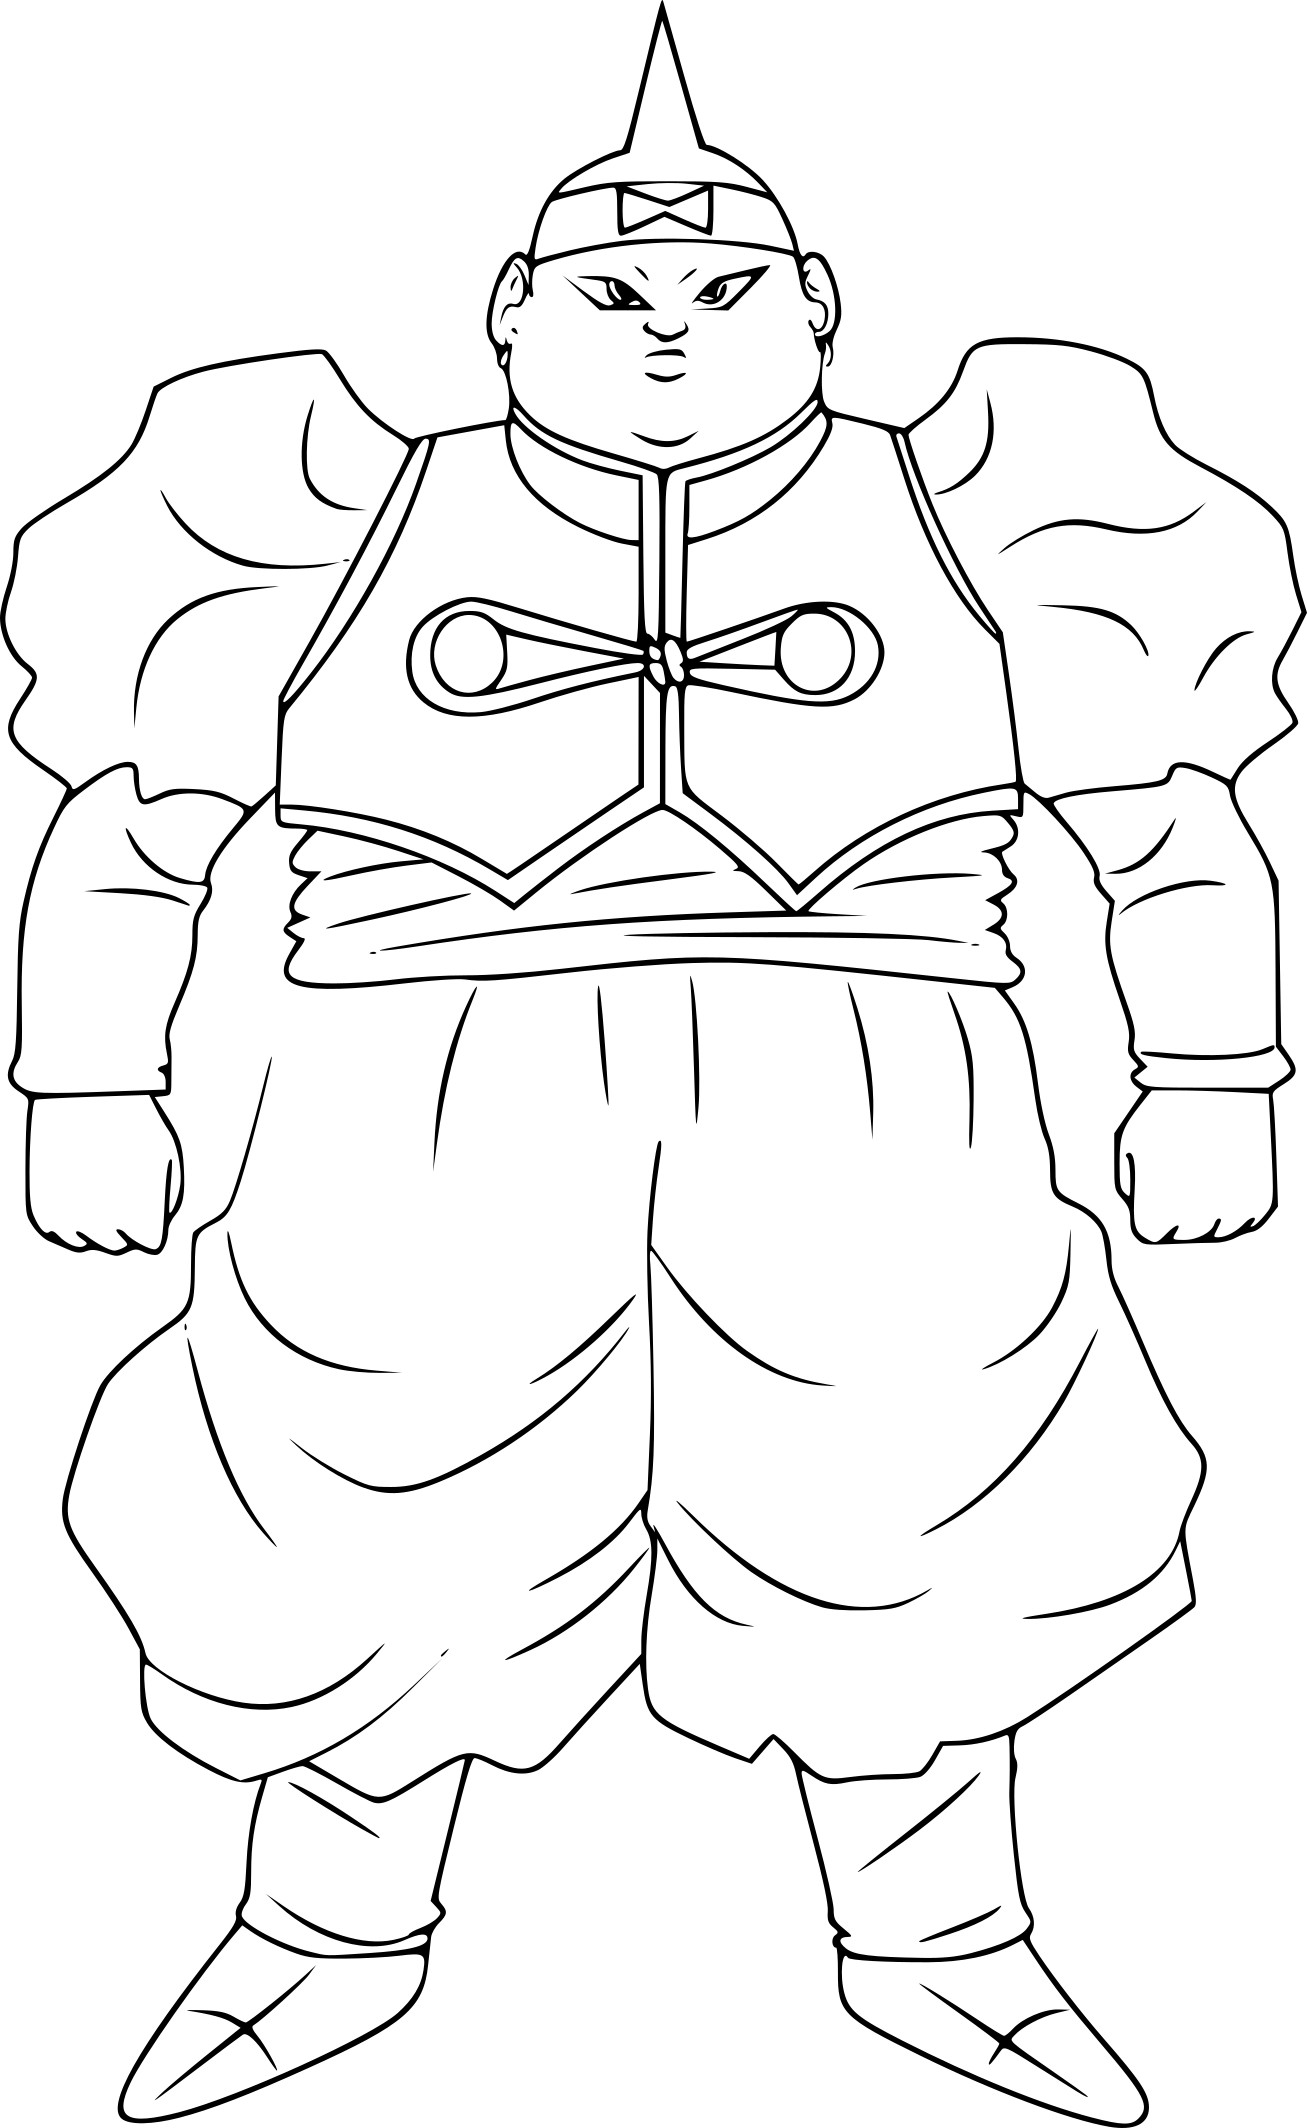 Coloriage c 19 dbz imprimer - Dessin de dragon ball ...